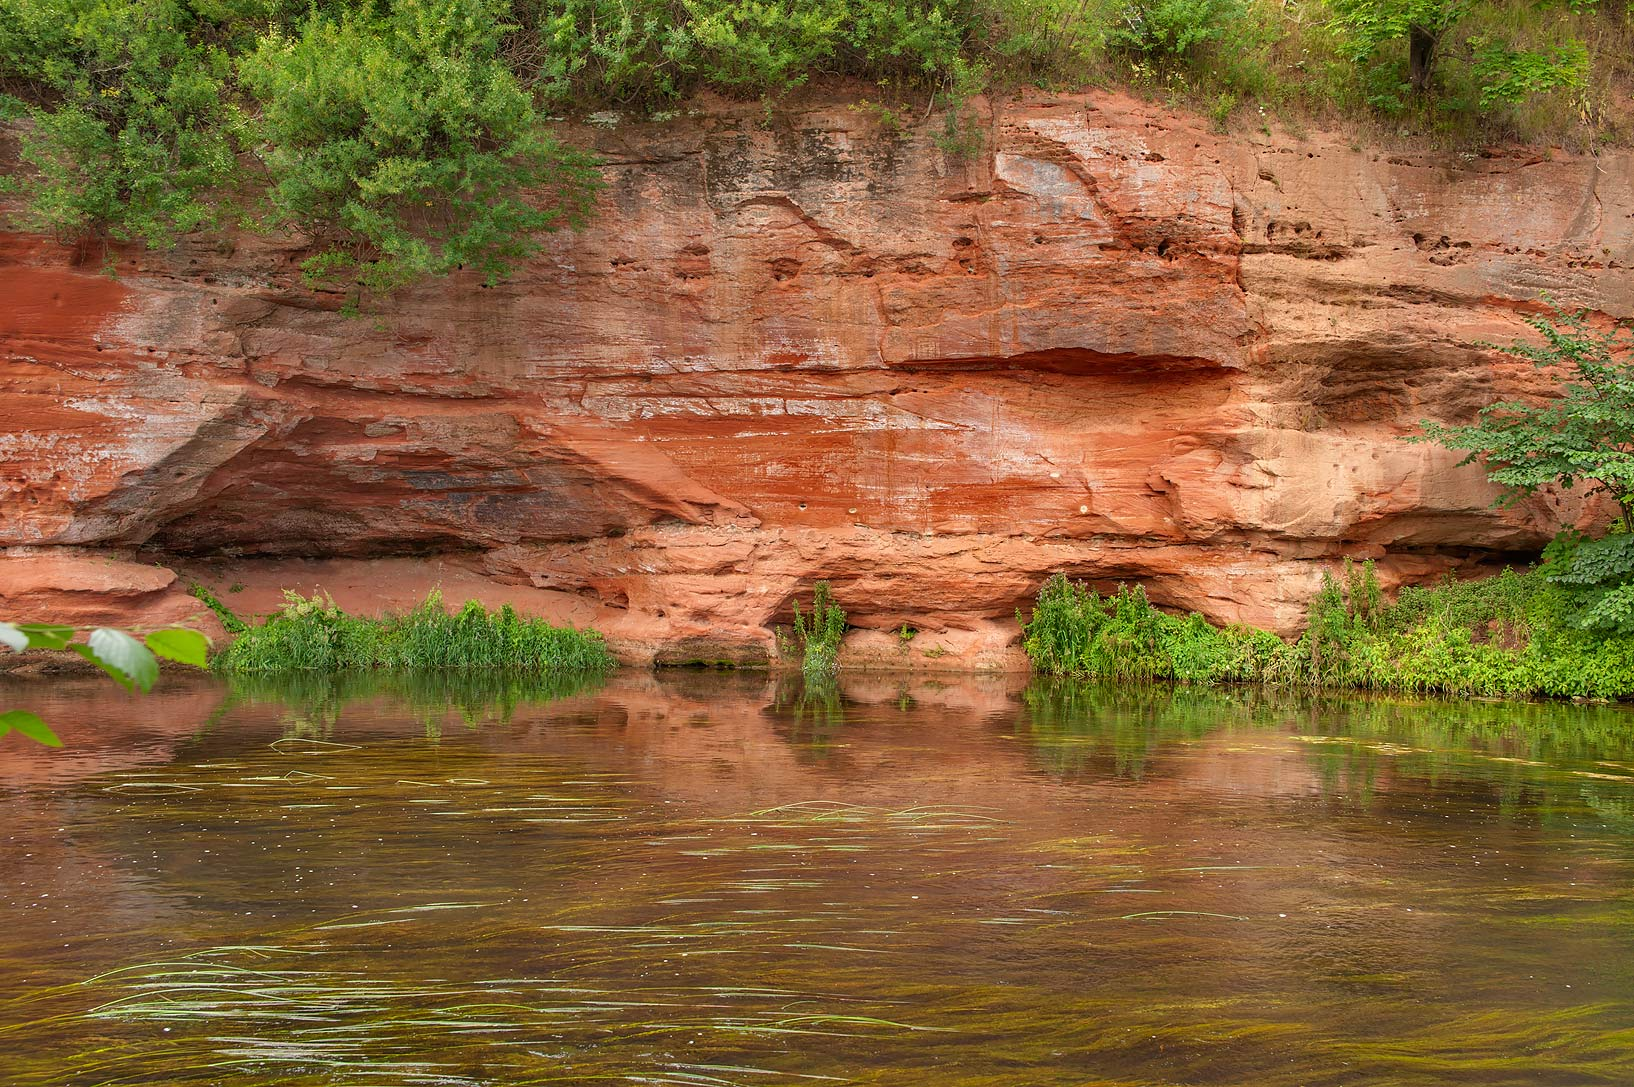 Red sandstone cliff facing Oredezh River. Siverskaya south from St.Petersburg, Russia